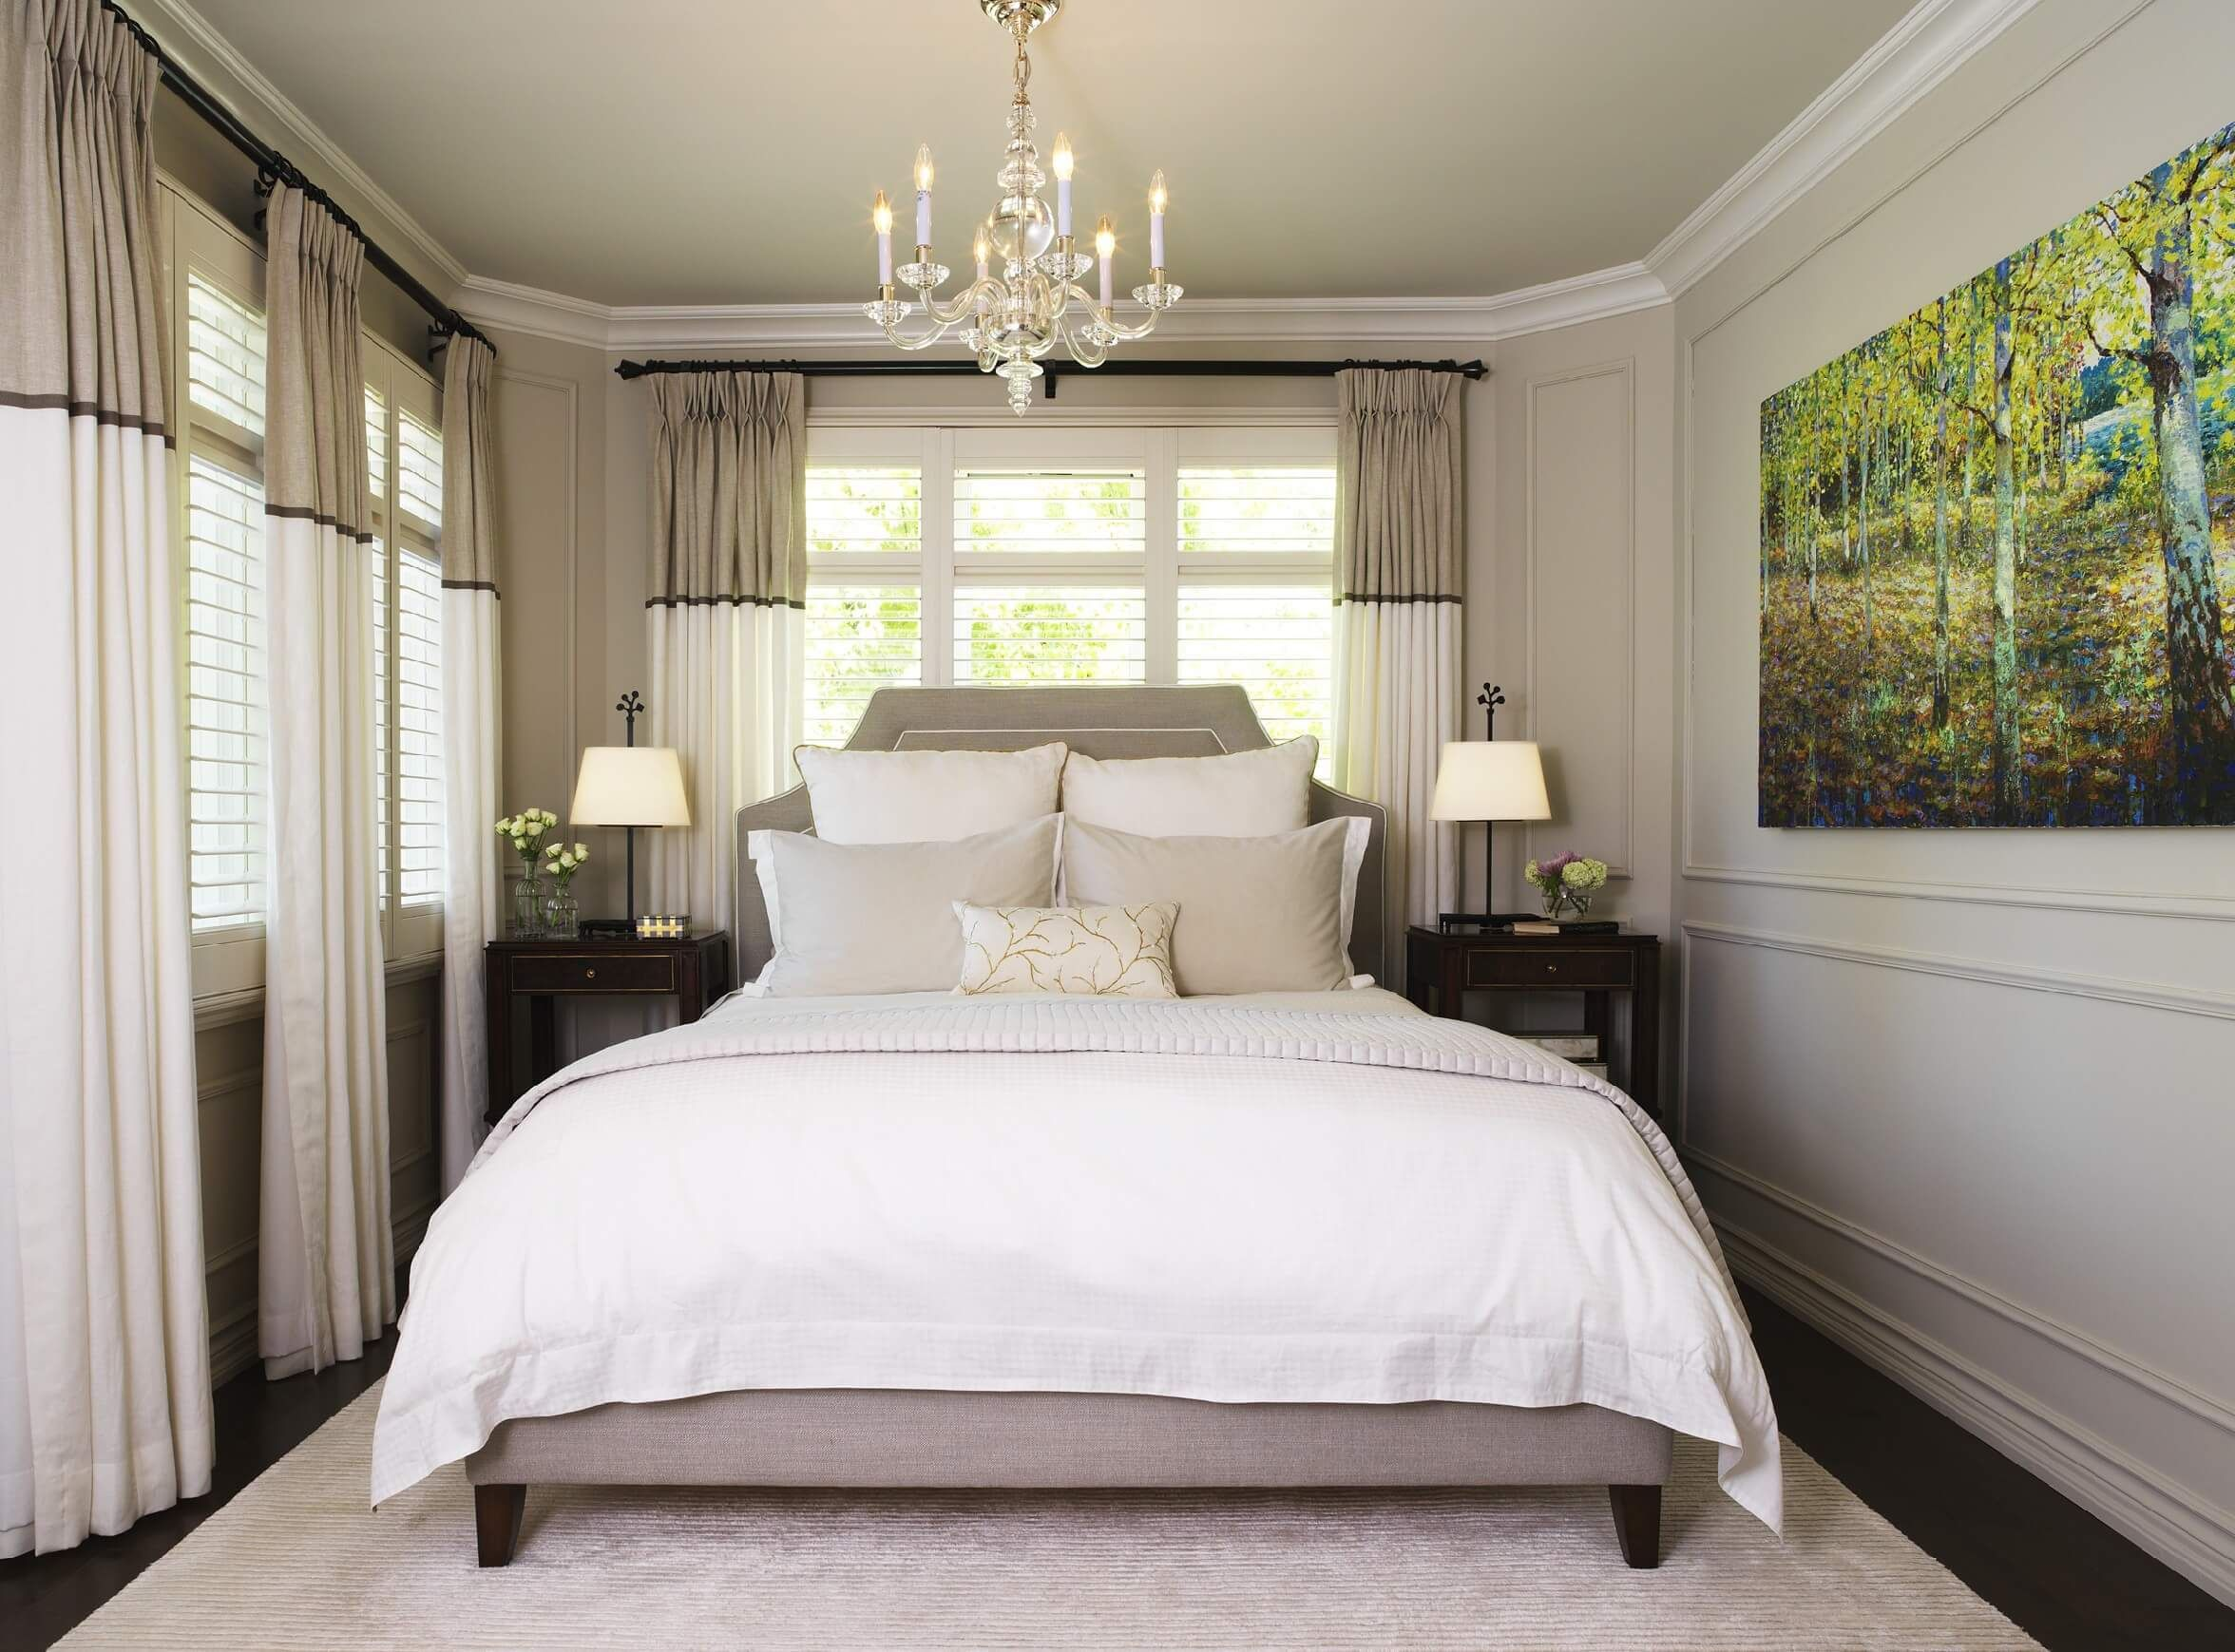 Adding drapery to any space, in particular a small bedroom